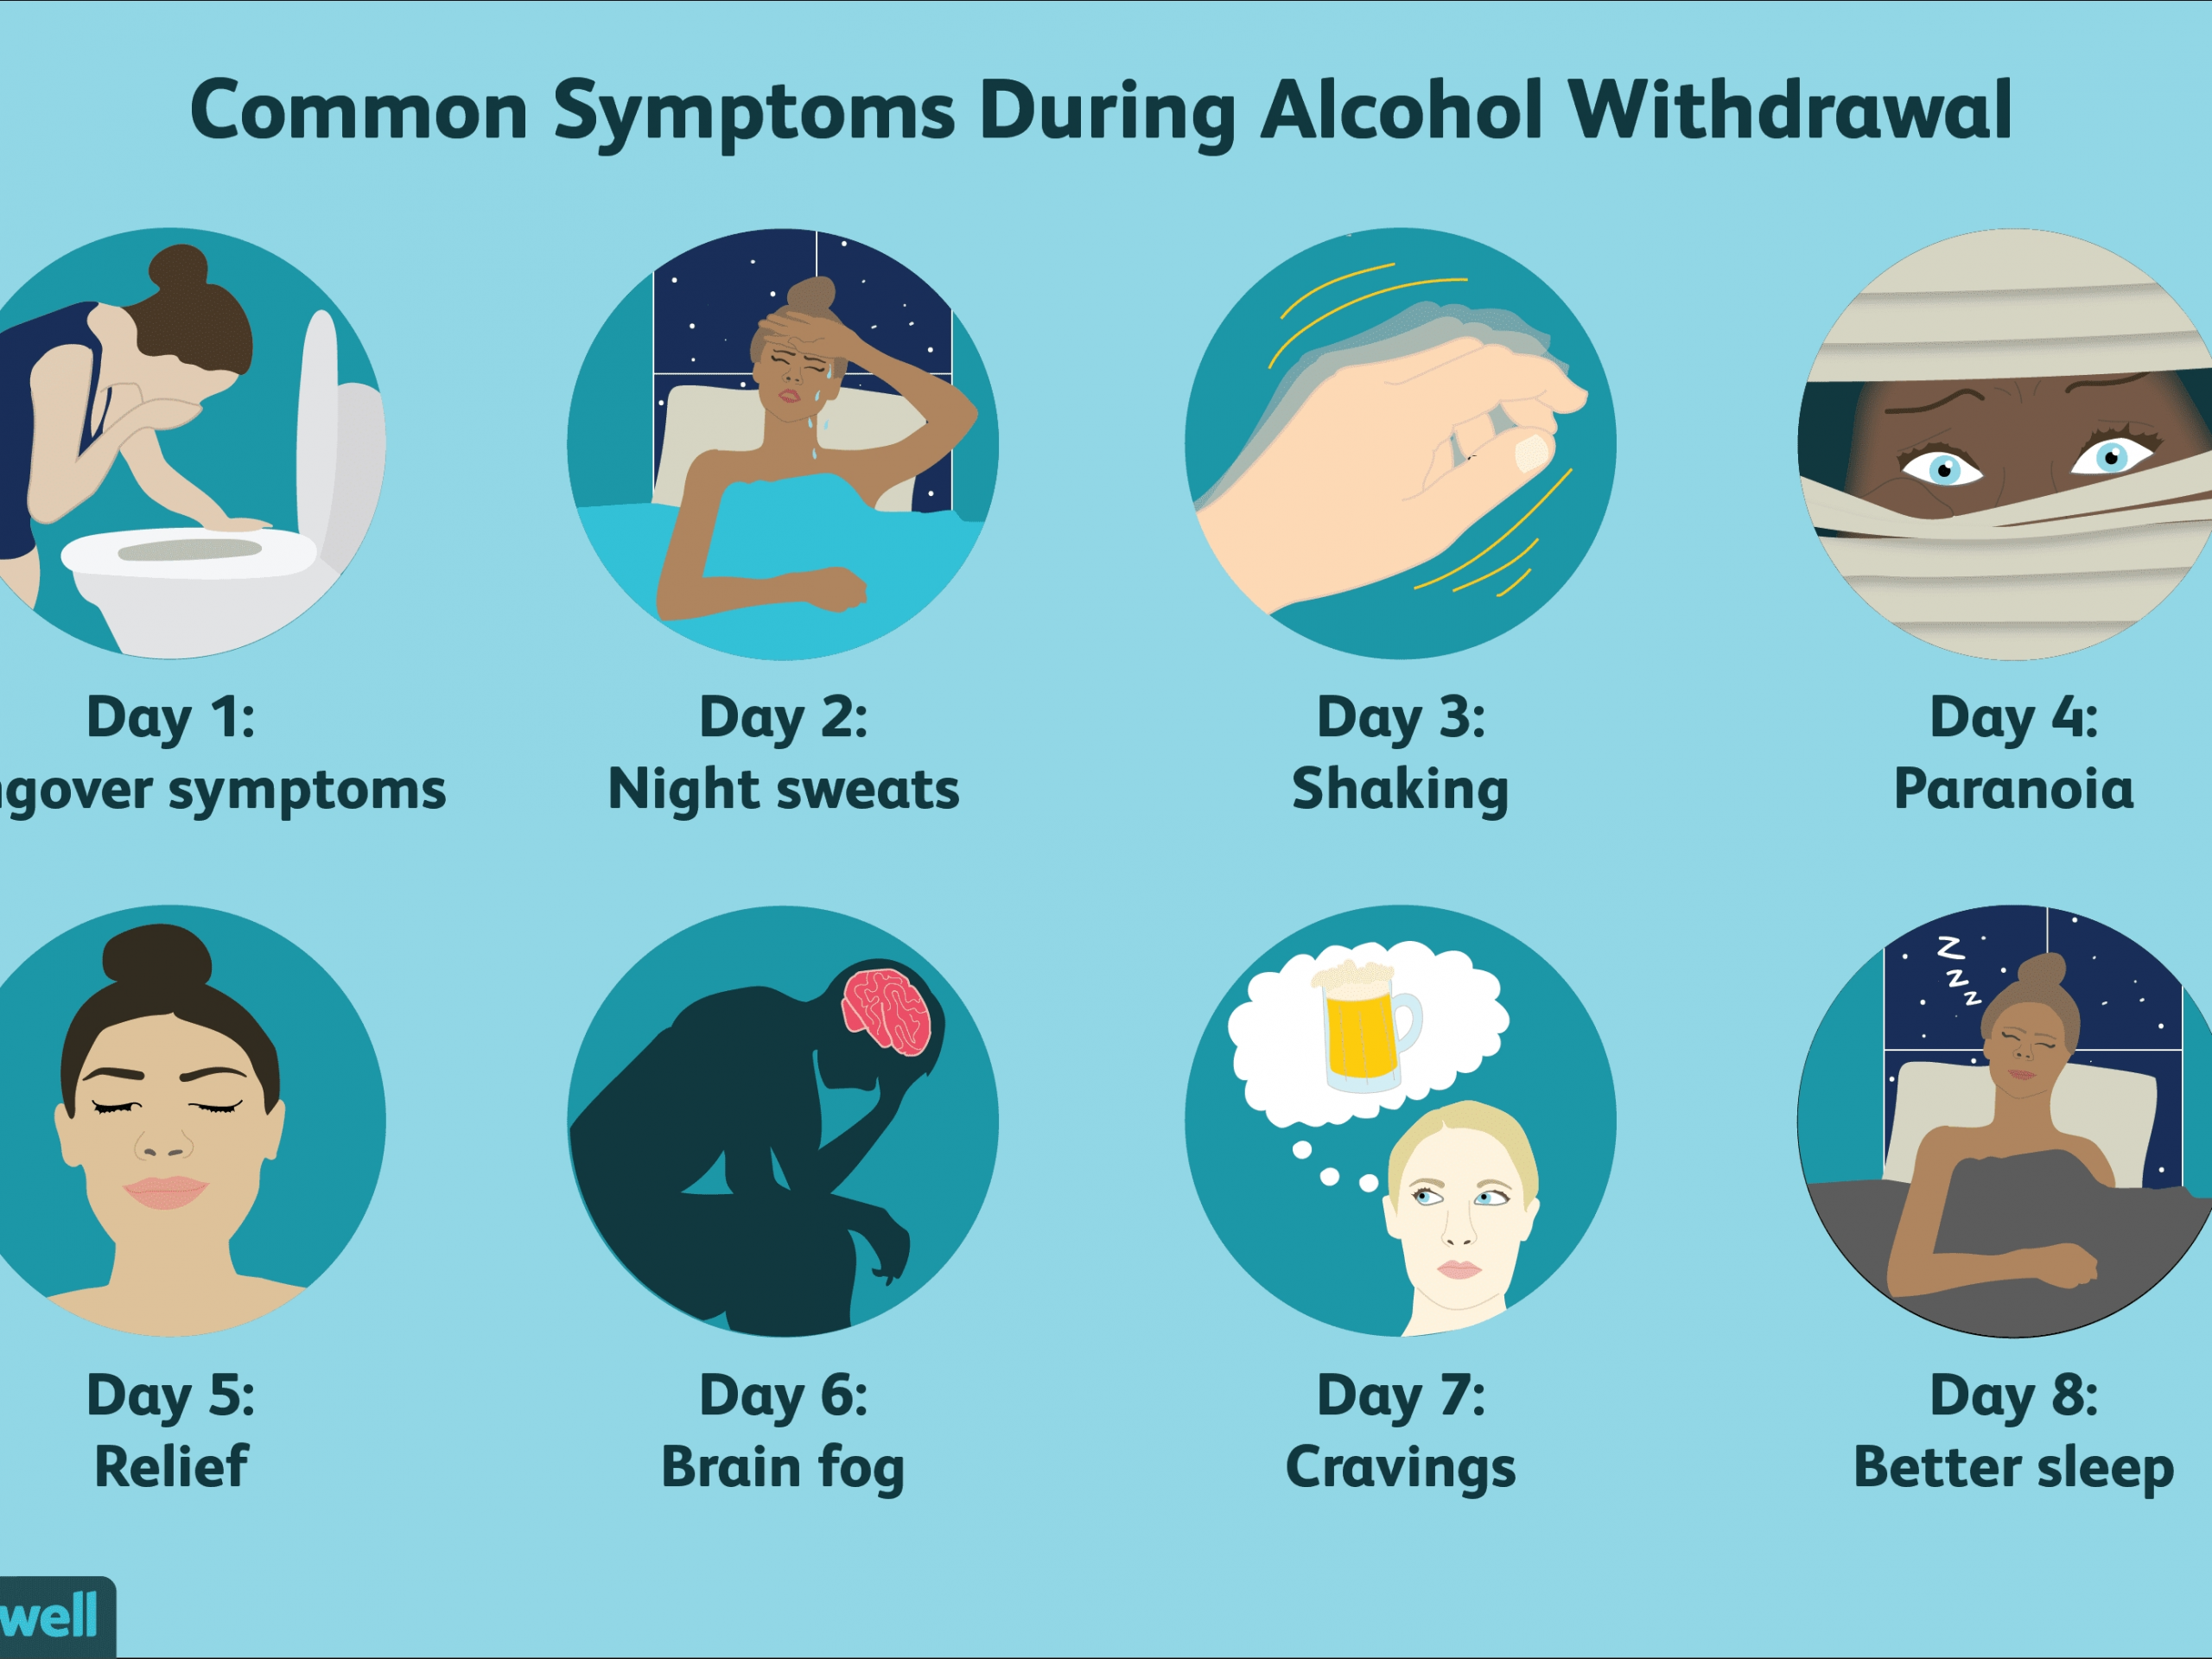 symptom stages for alcohol withdrawal